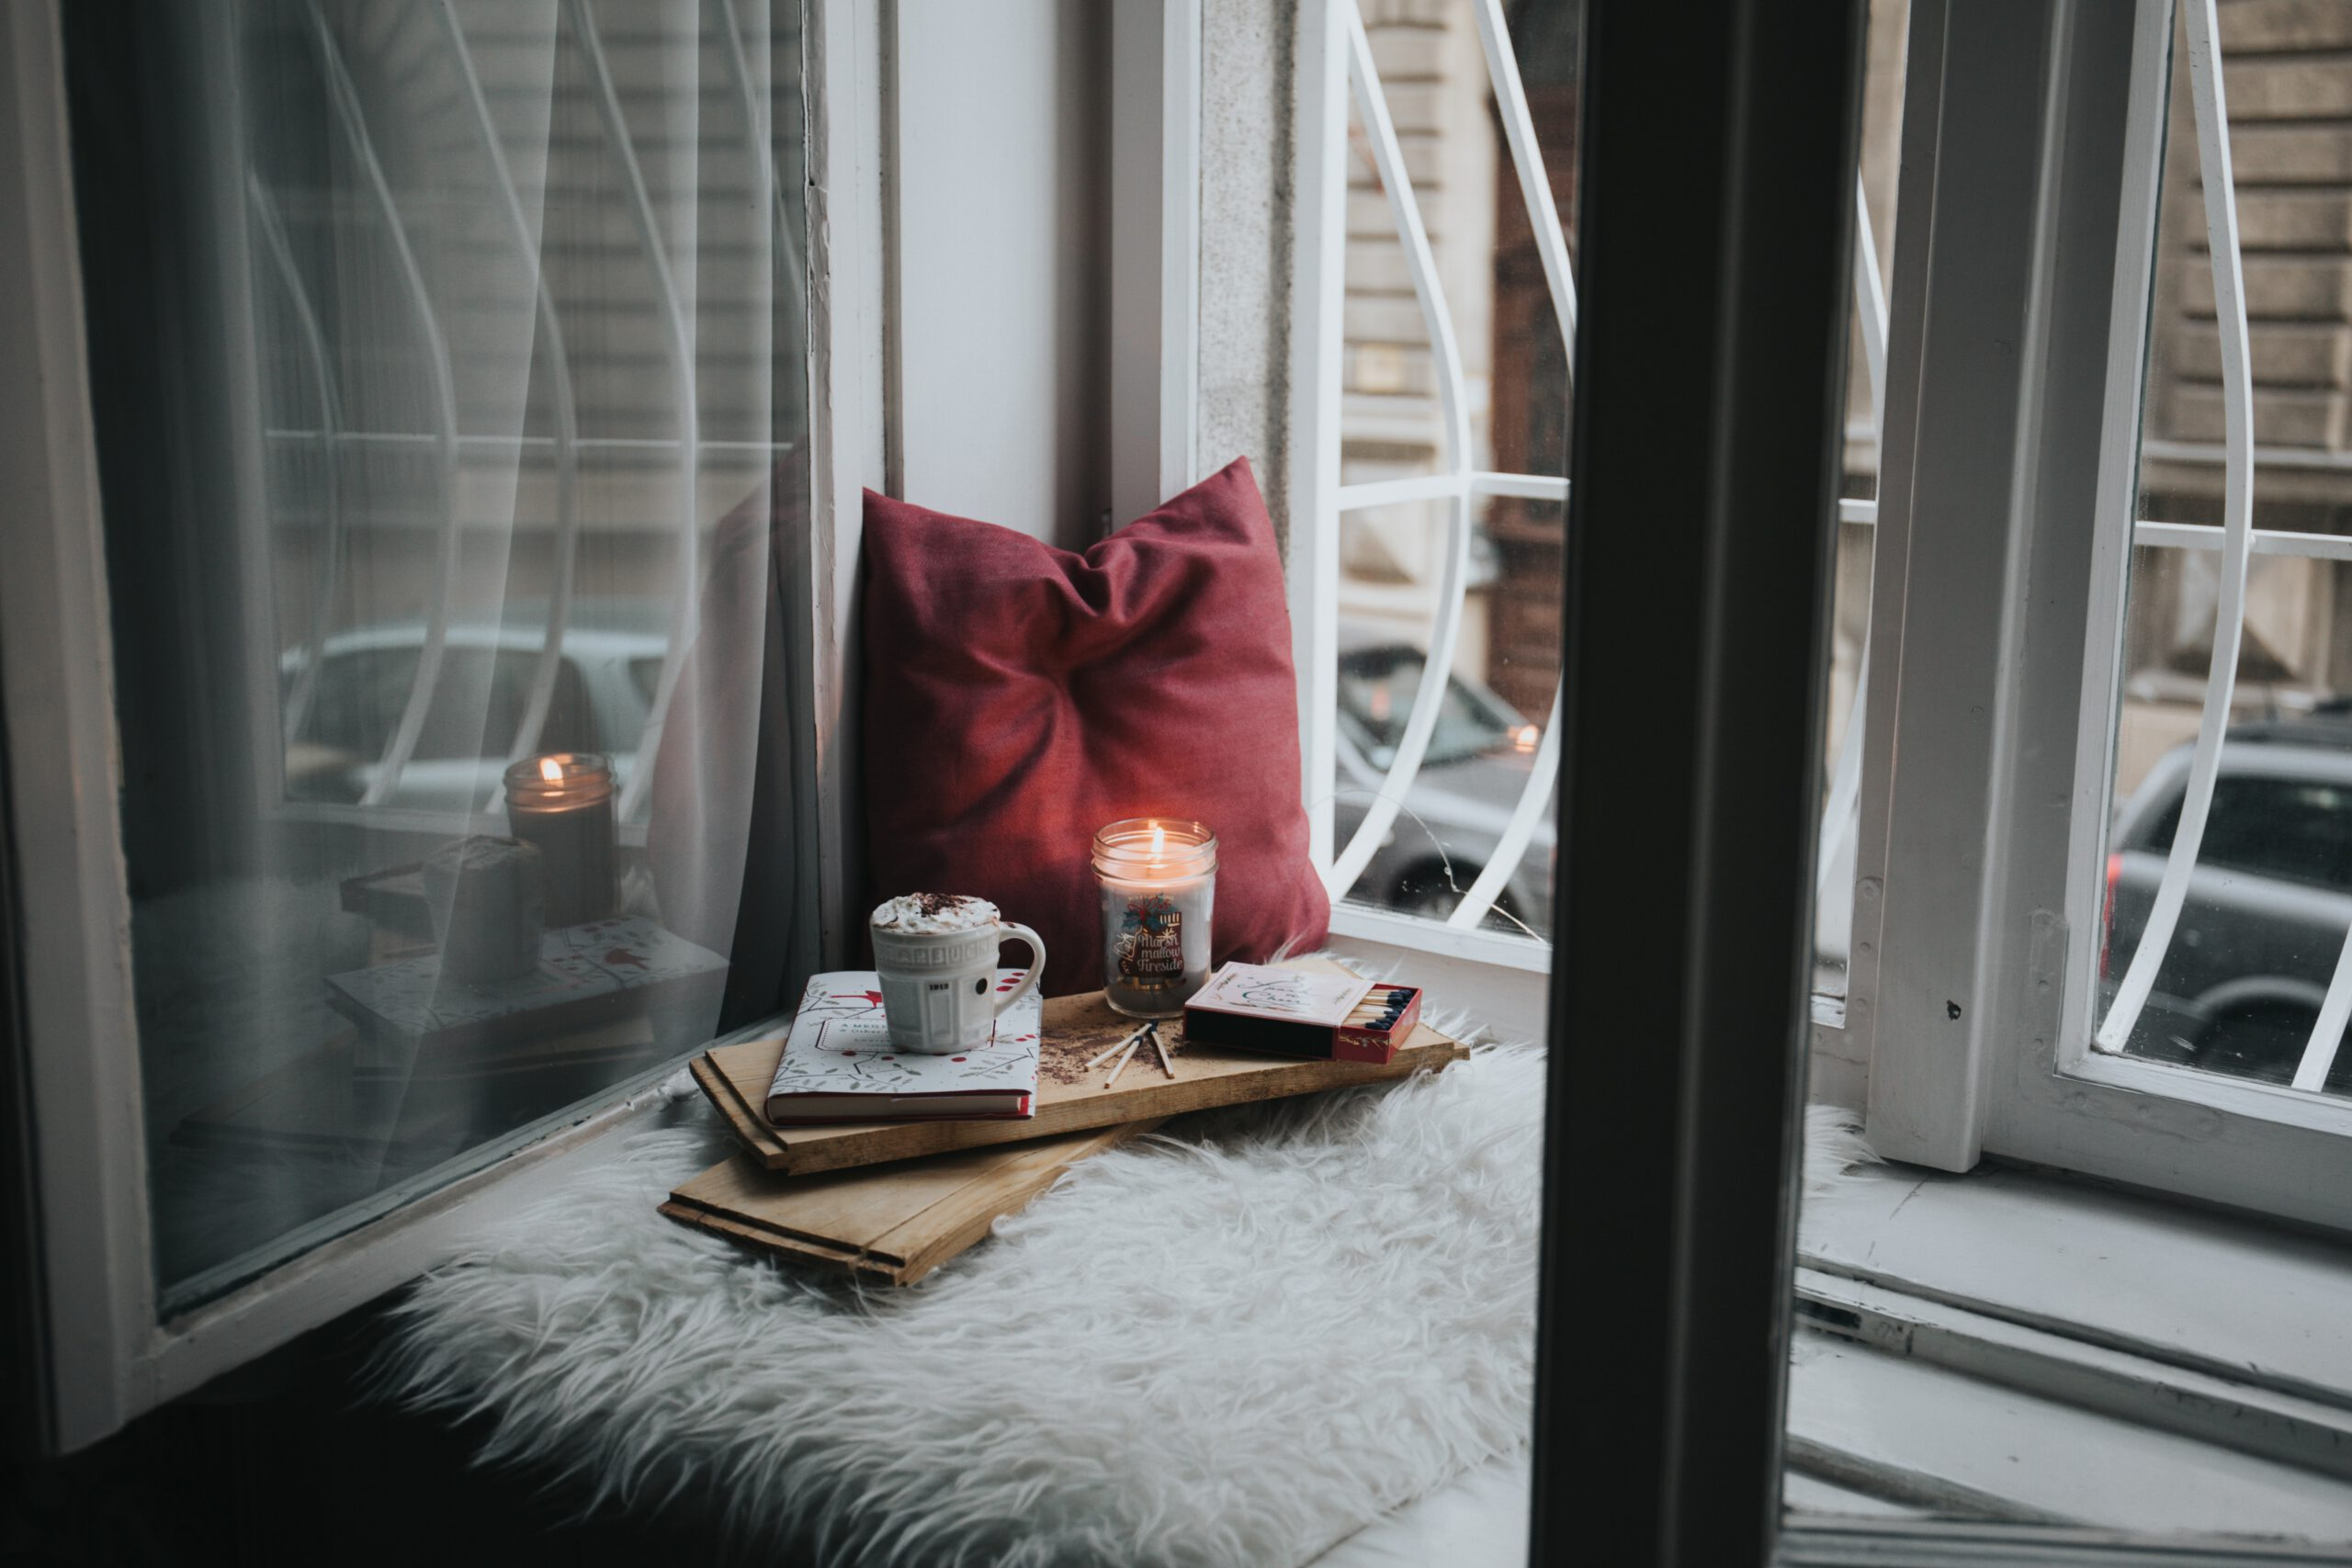 31 self-care ideas for winter